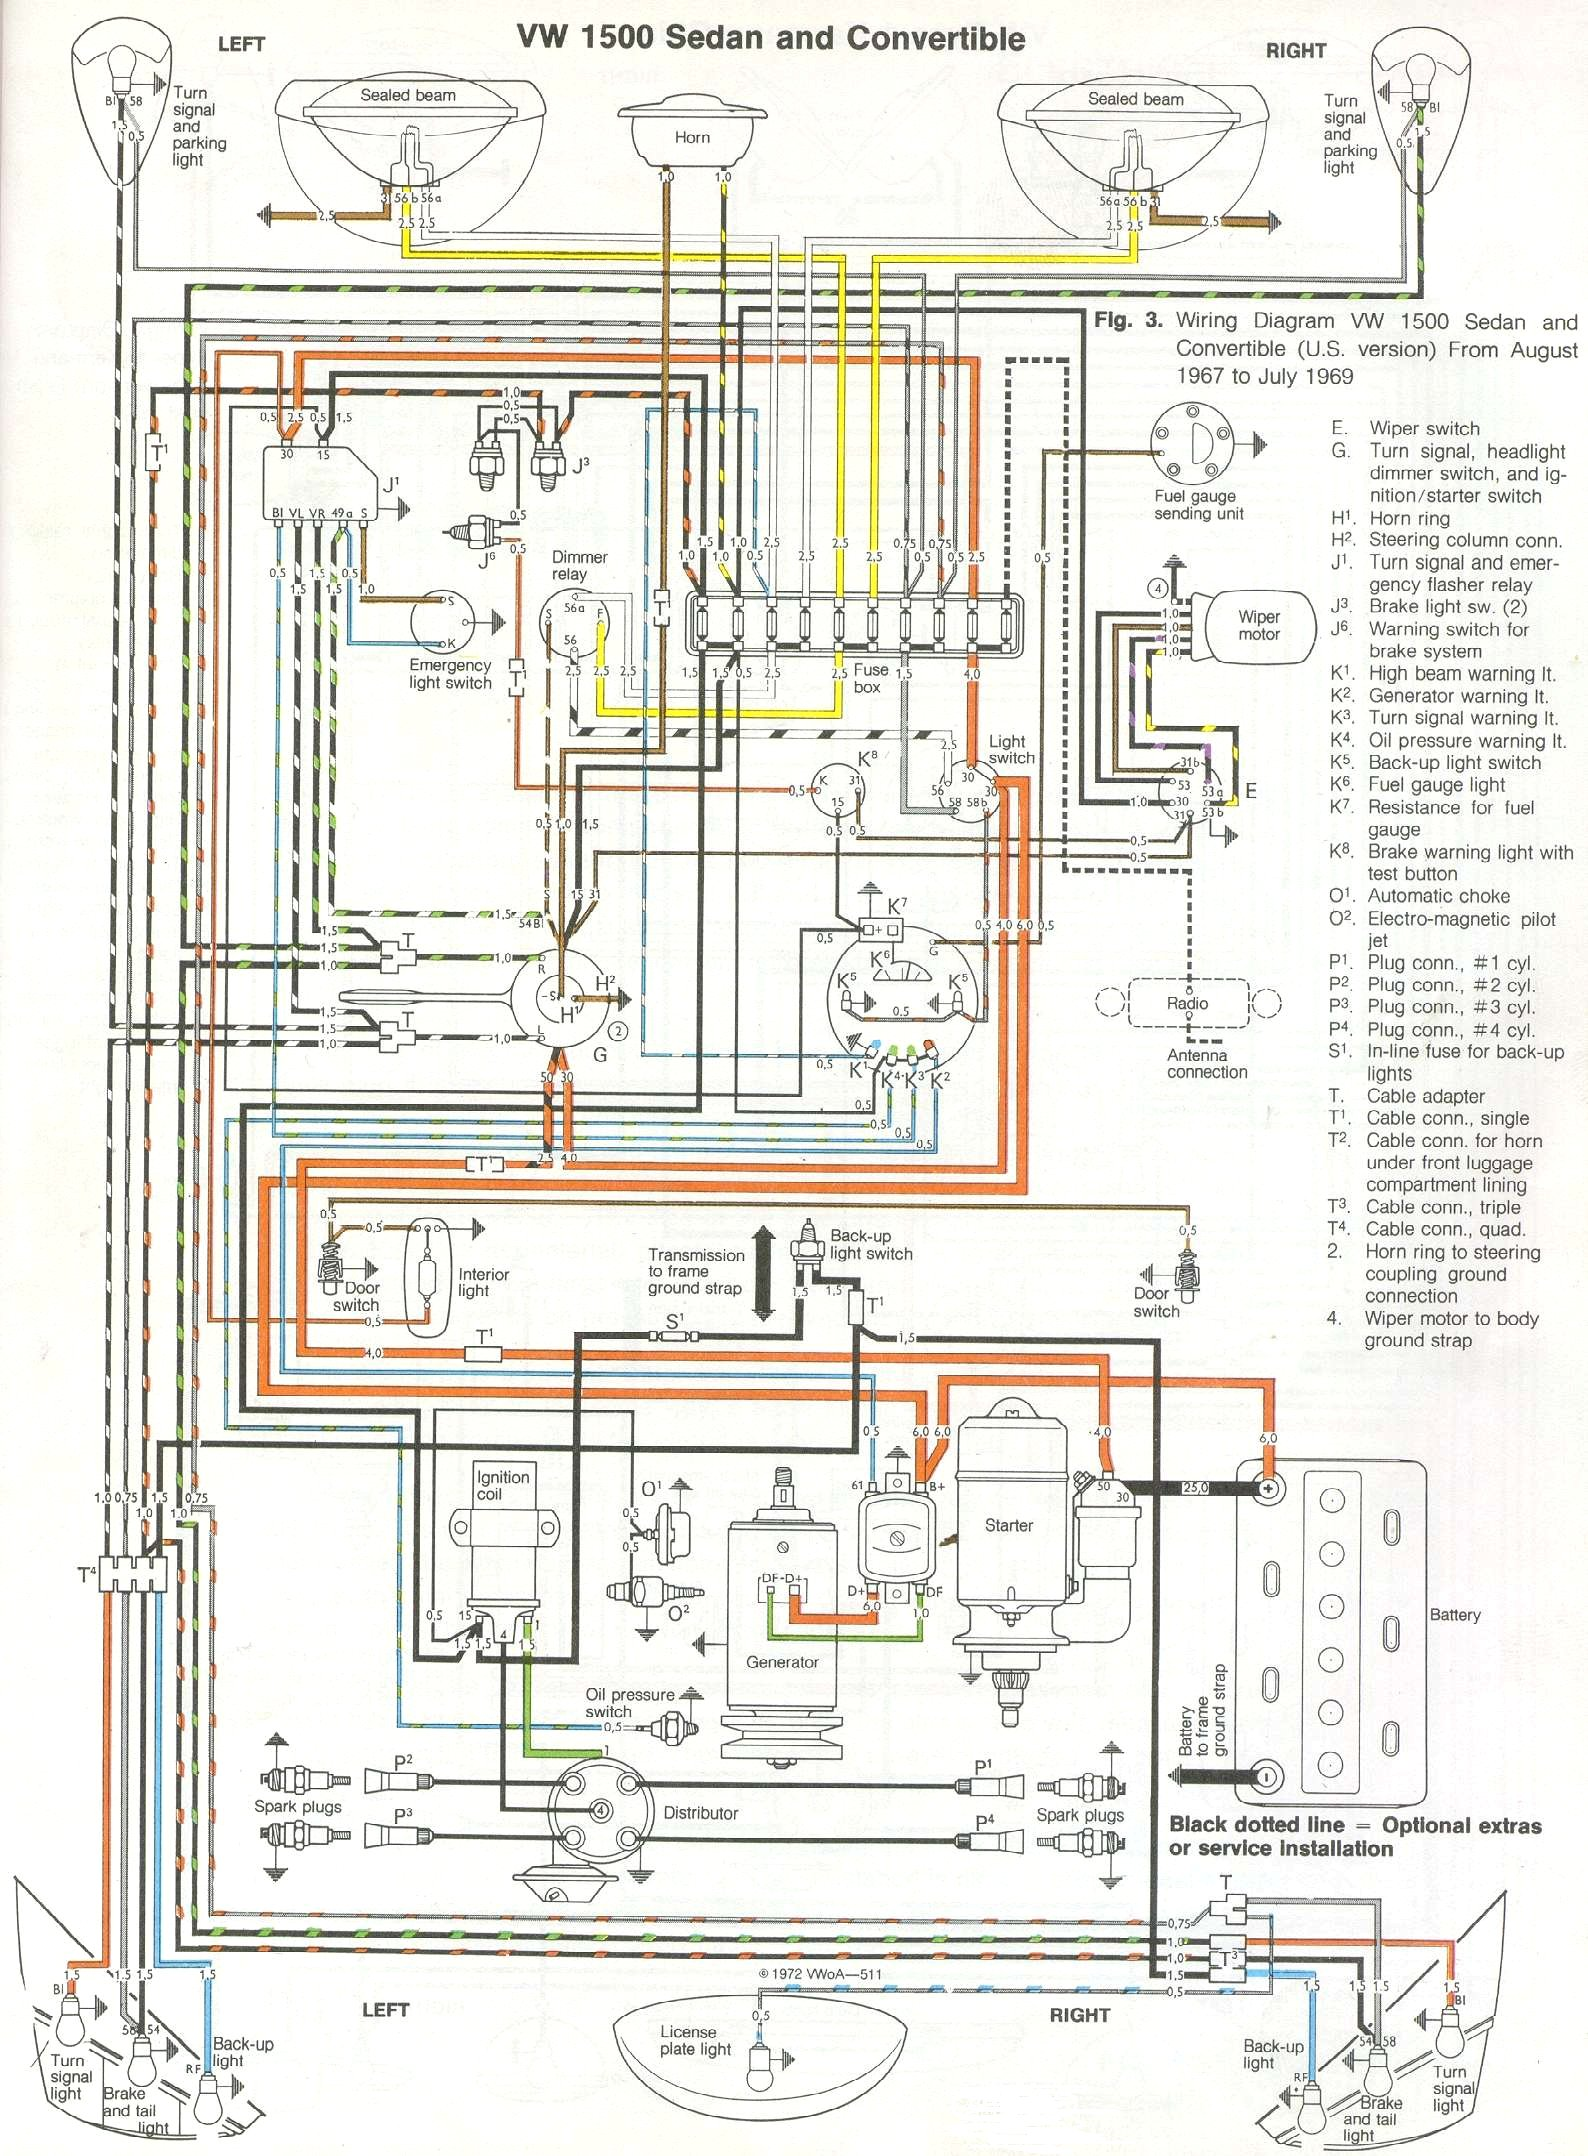 bug_6869 1969 71 beetle wiring diagram thegoldenbug com 1970 vw bug wiring diagram at eliteediting.co